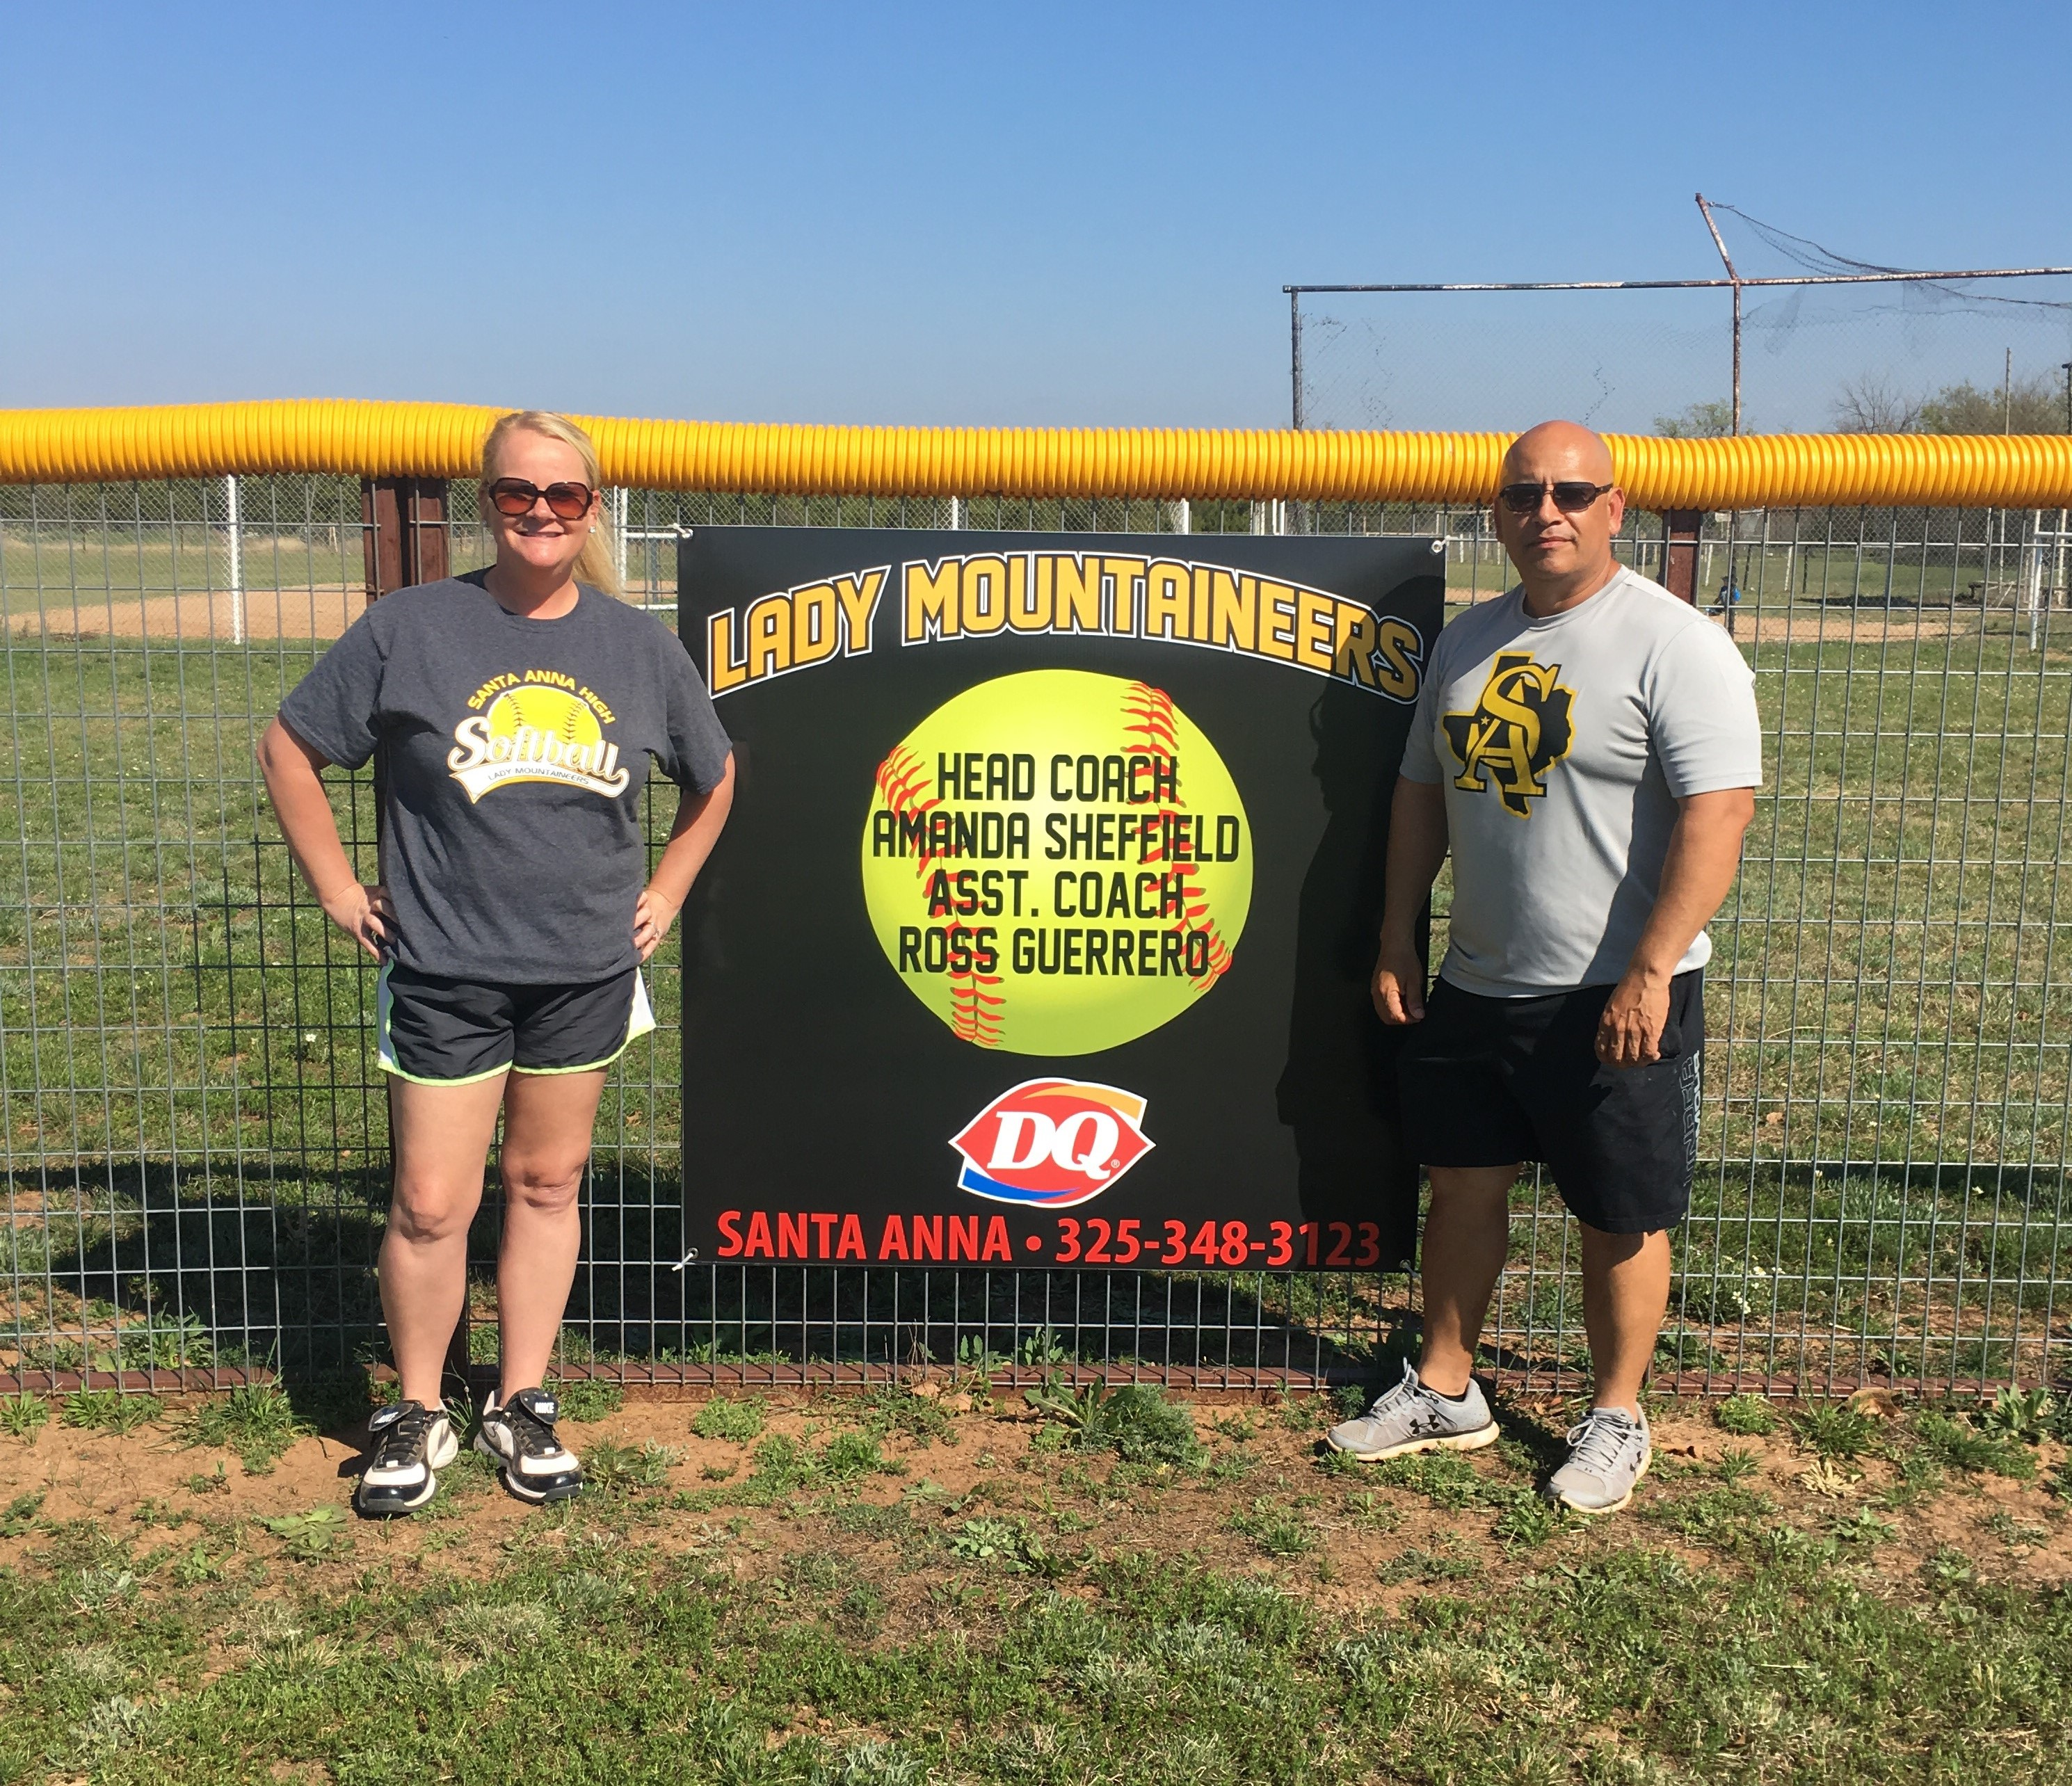 Softball Coaches Sheffield and Guerrero